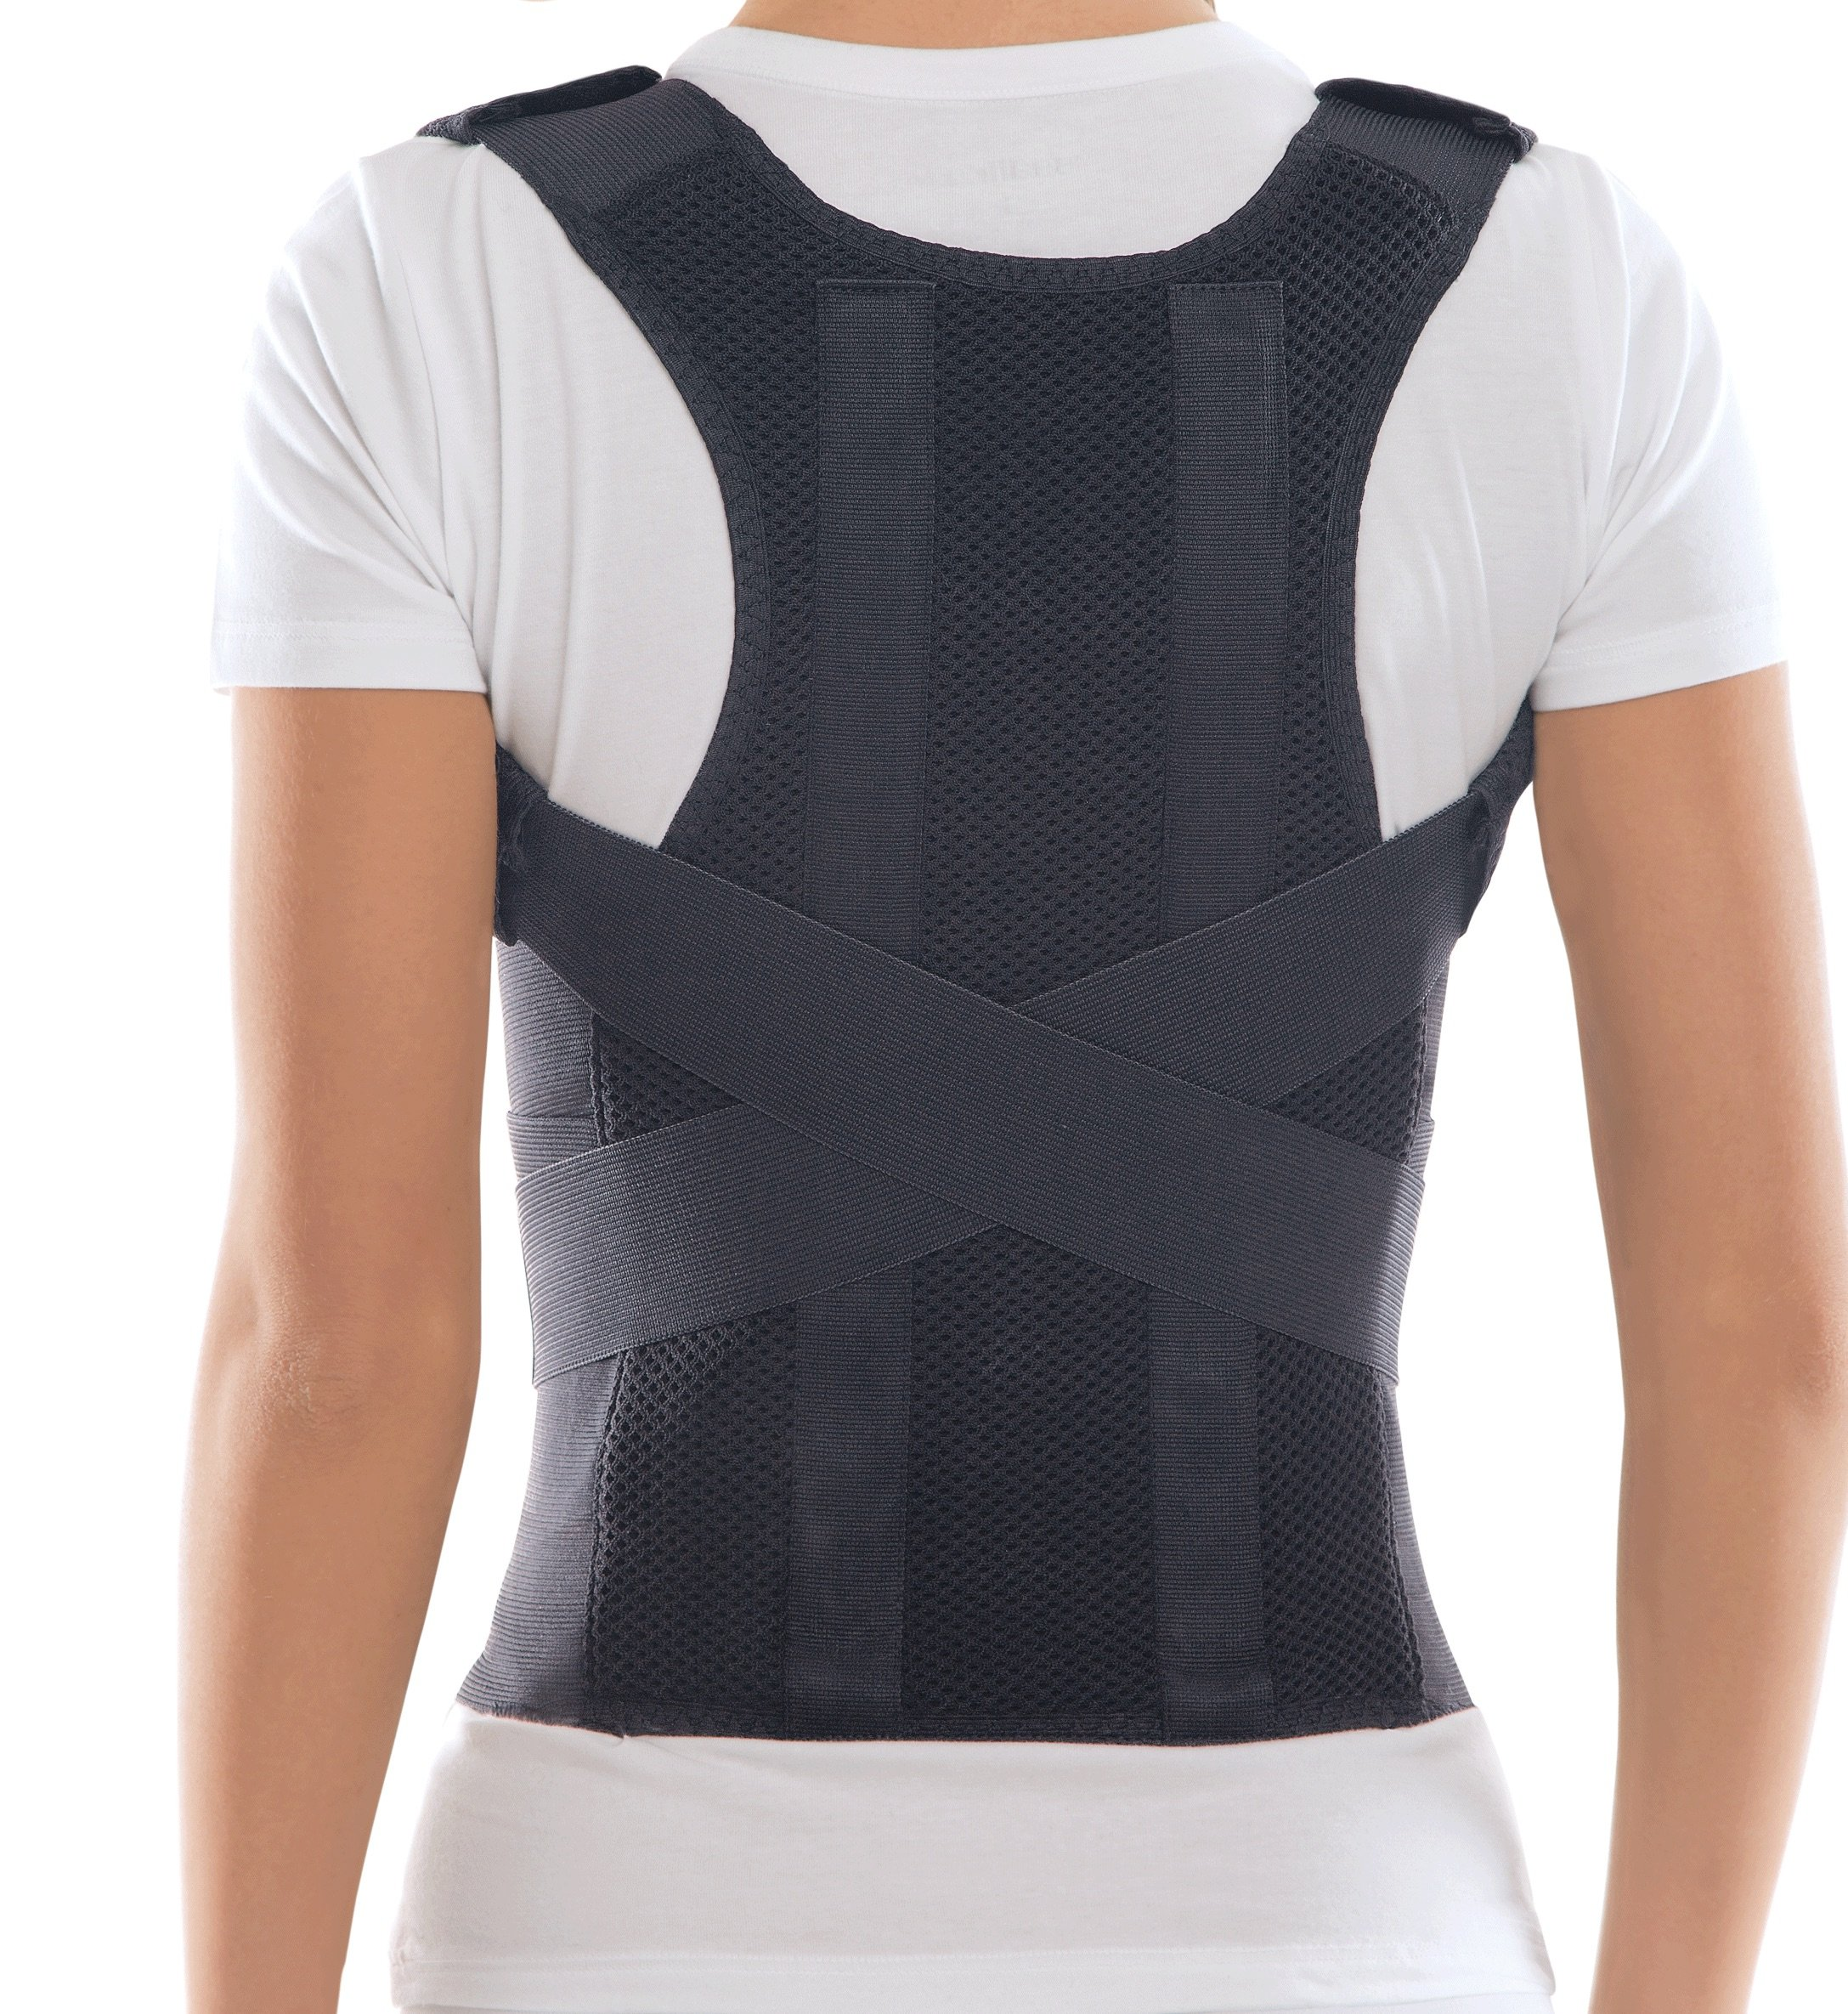 TOROS-GROUP Comfort Posture Corrector Clavicle and Shoulder Support Back Brace, Upper and Lower Back Pain Relief, Fully Adjustable for Men and Women, Thoracic Kyphosis L /656A-4 by TOROS-GROUP